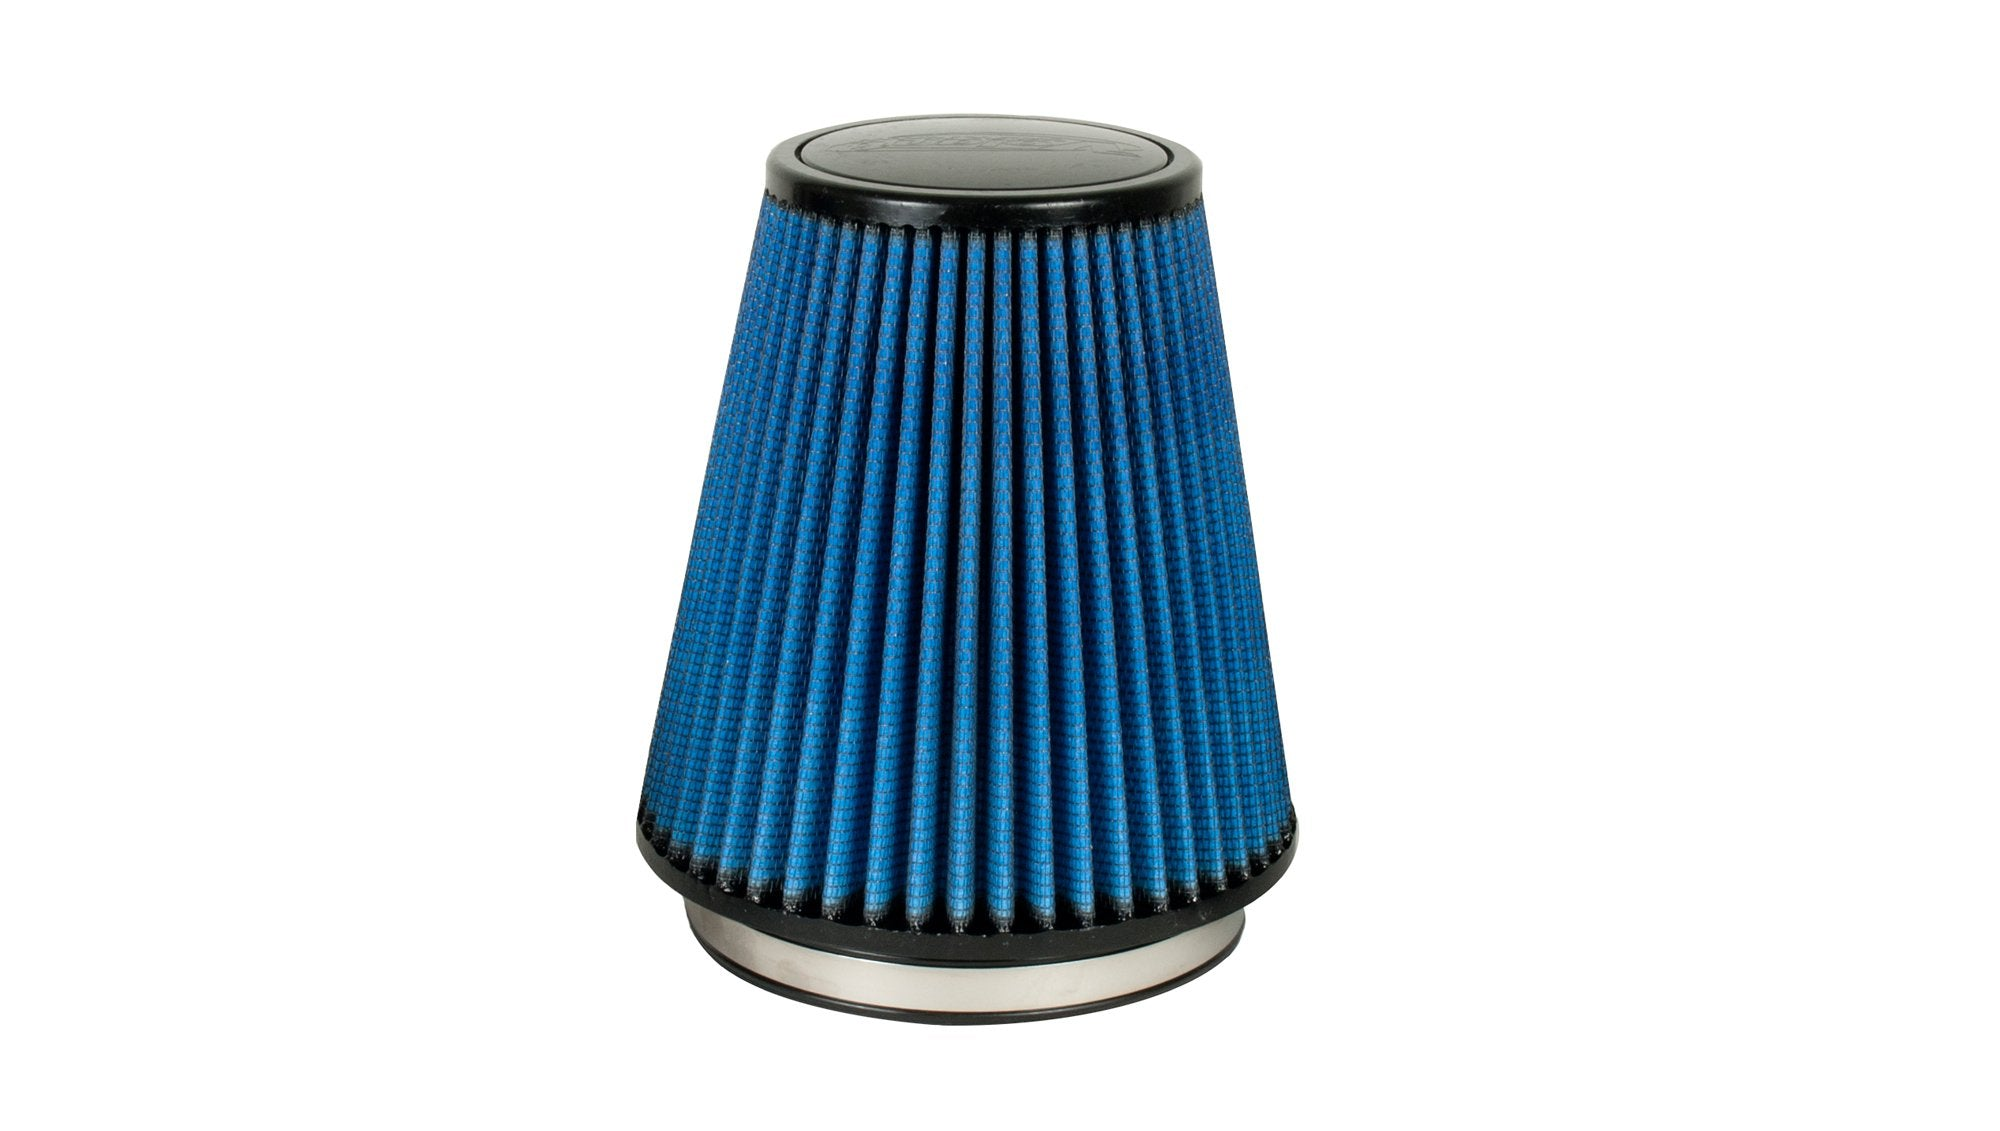 1999-2020 Chevrolet Suburban and Tahoe Oiled Air Intake Air Filter - 5119